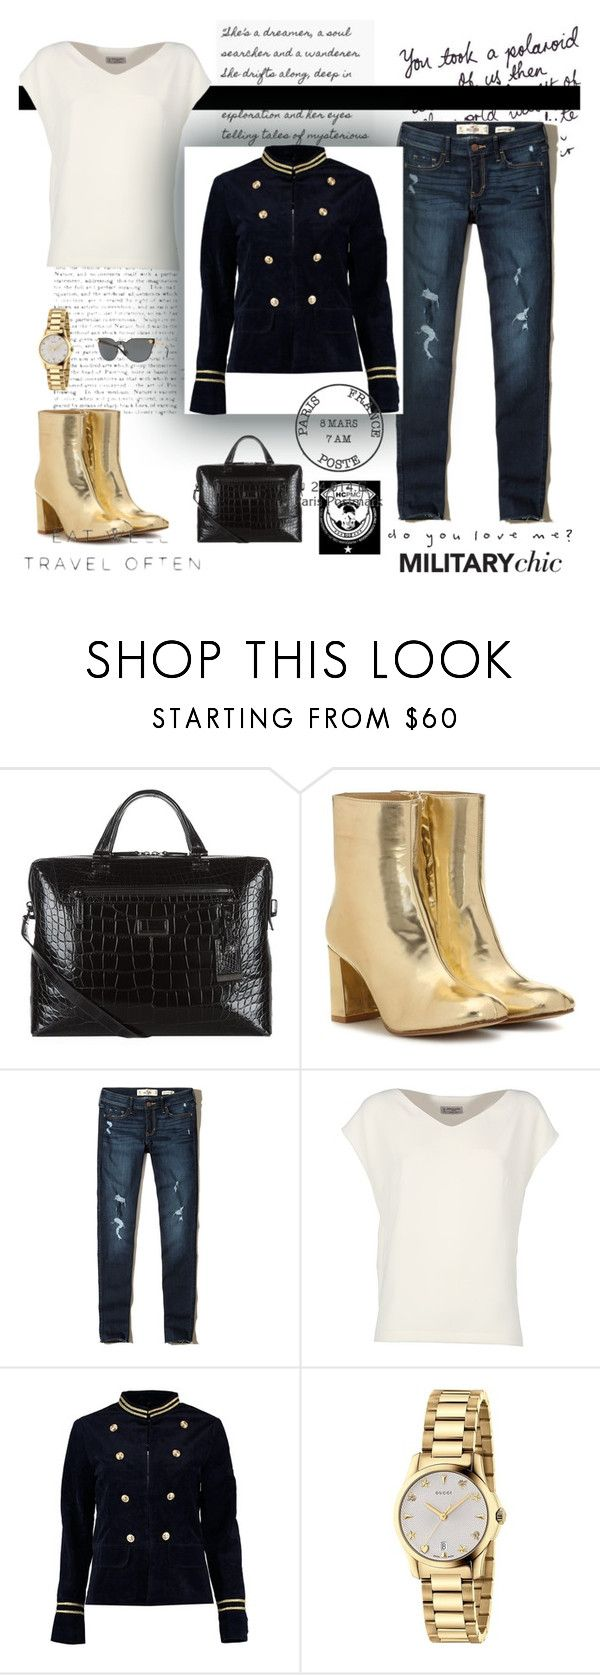 """military jacket"" by natyapshopper on Polyvore featuring moda, Tumi, Maryam Nassir Zadeh, Hollister Co., Alberto Biani, Boohoo, Gucci y WALL"